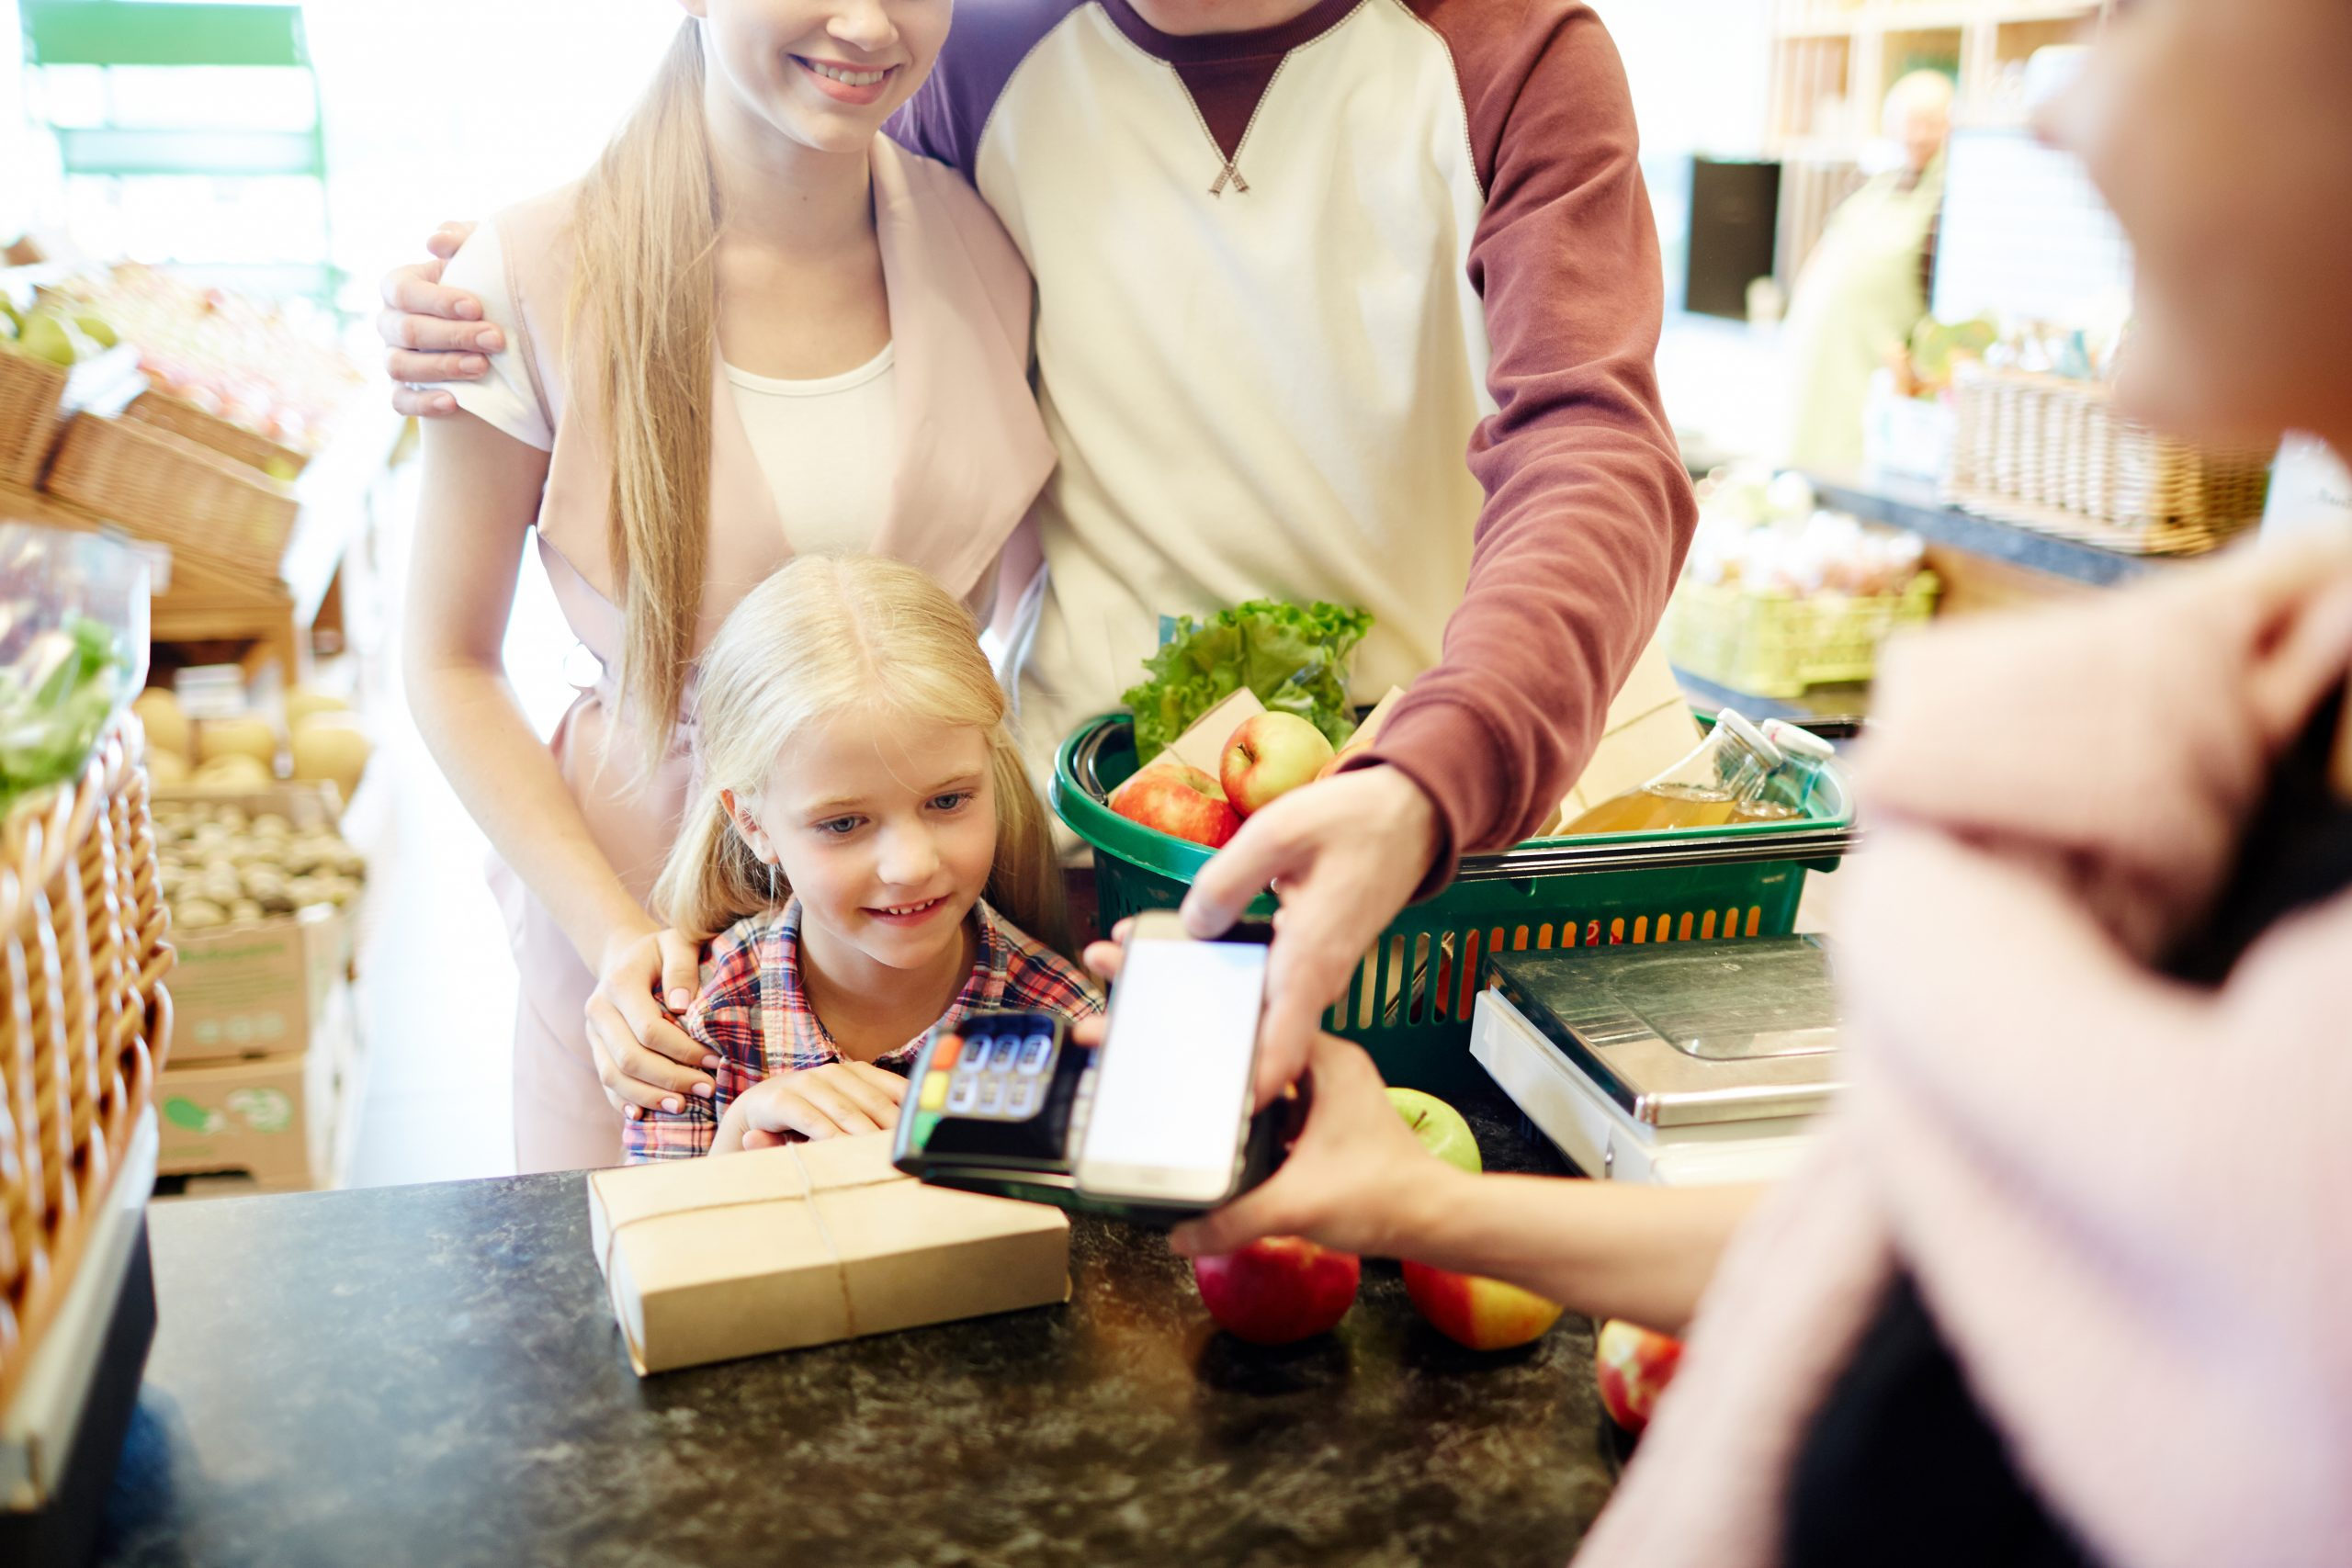 Family using their smartphone to make an NFC payment